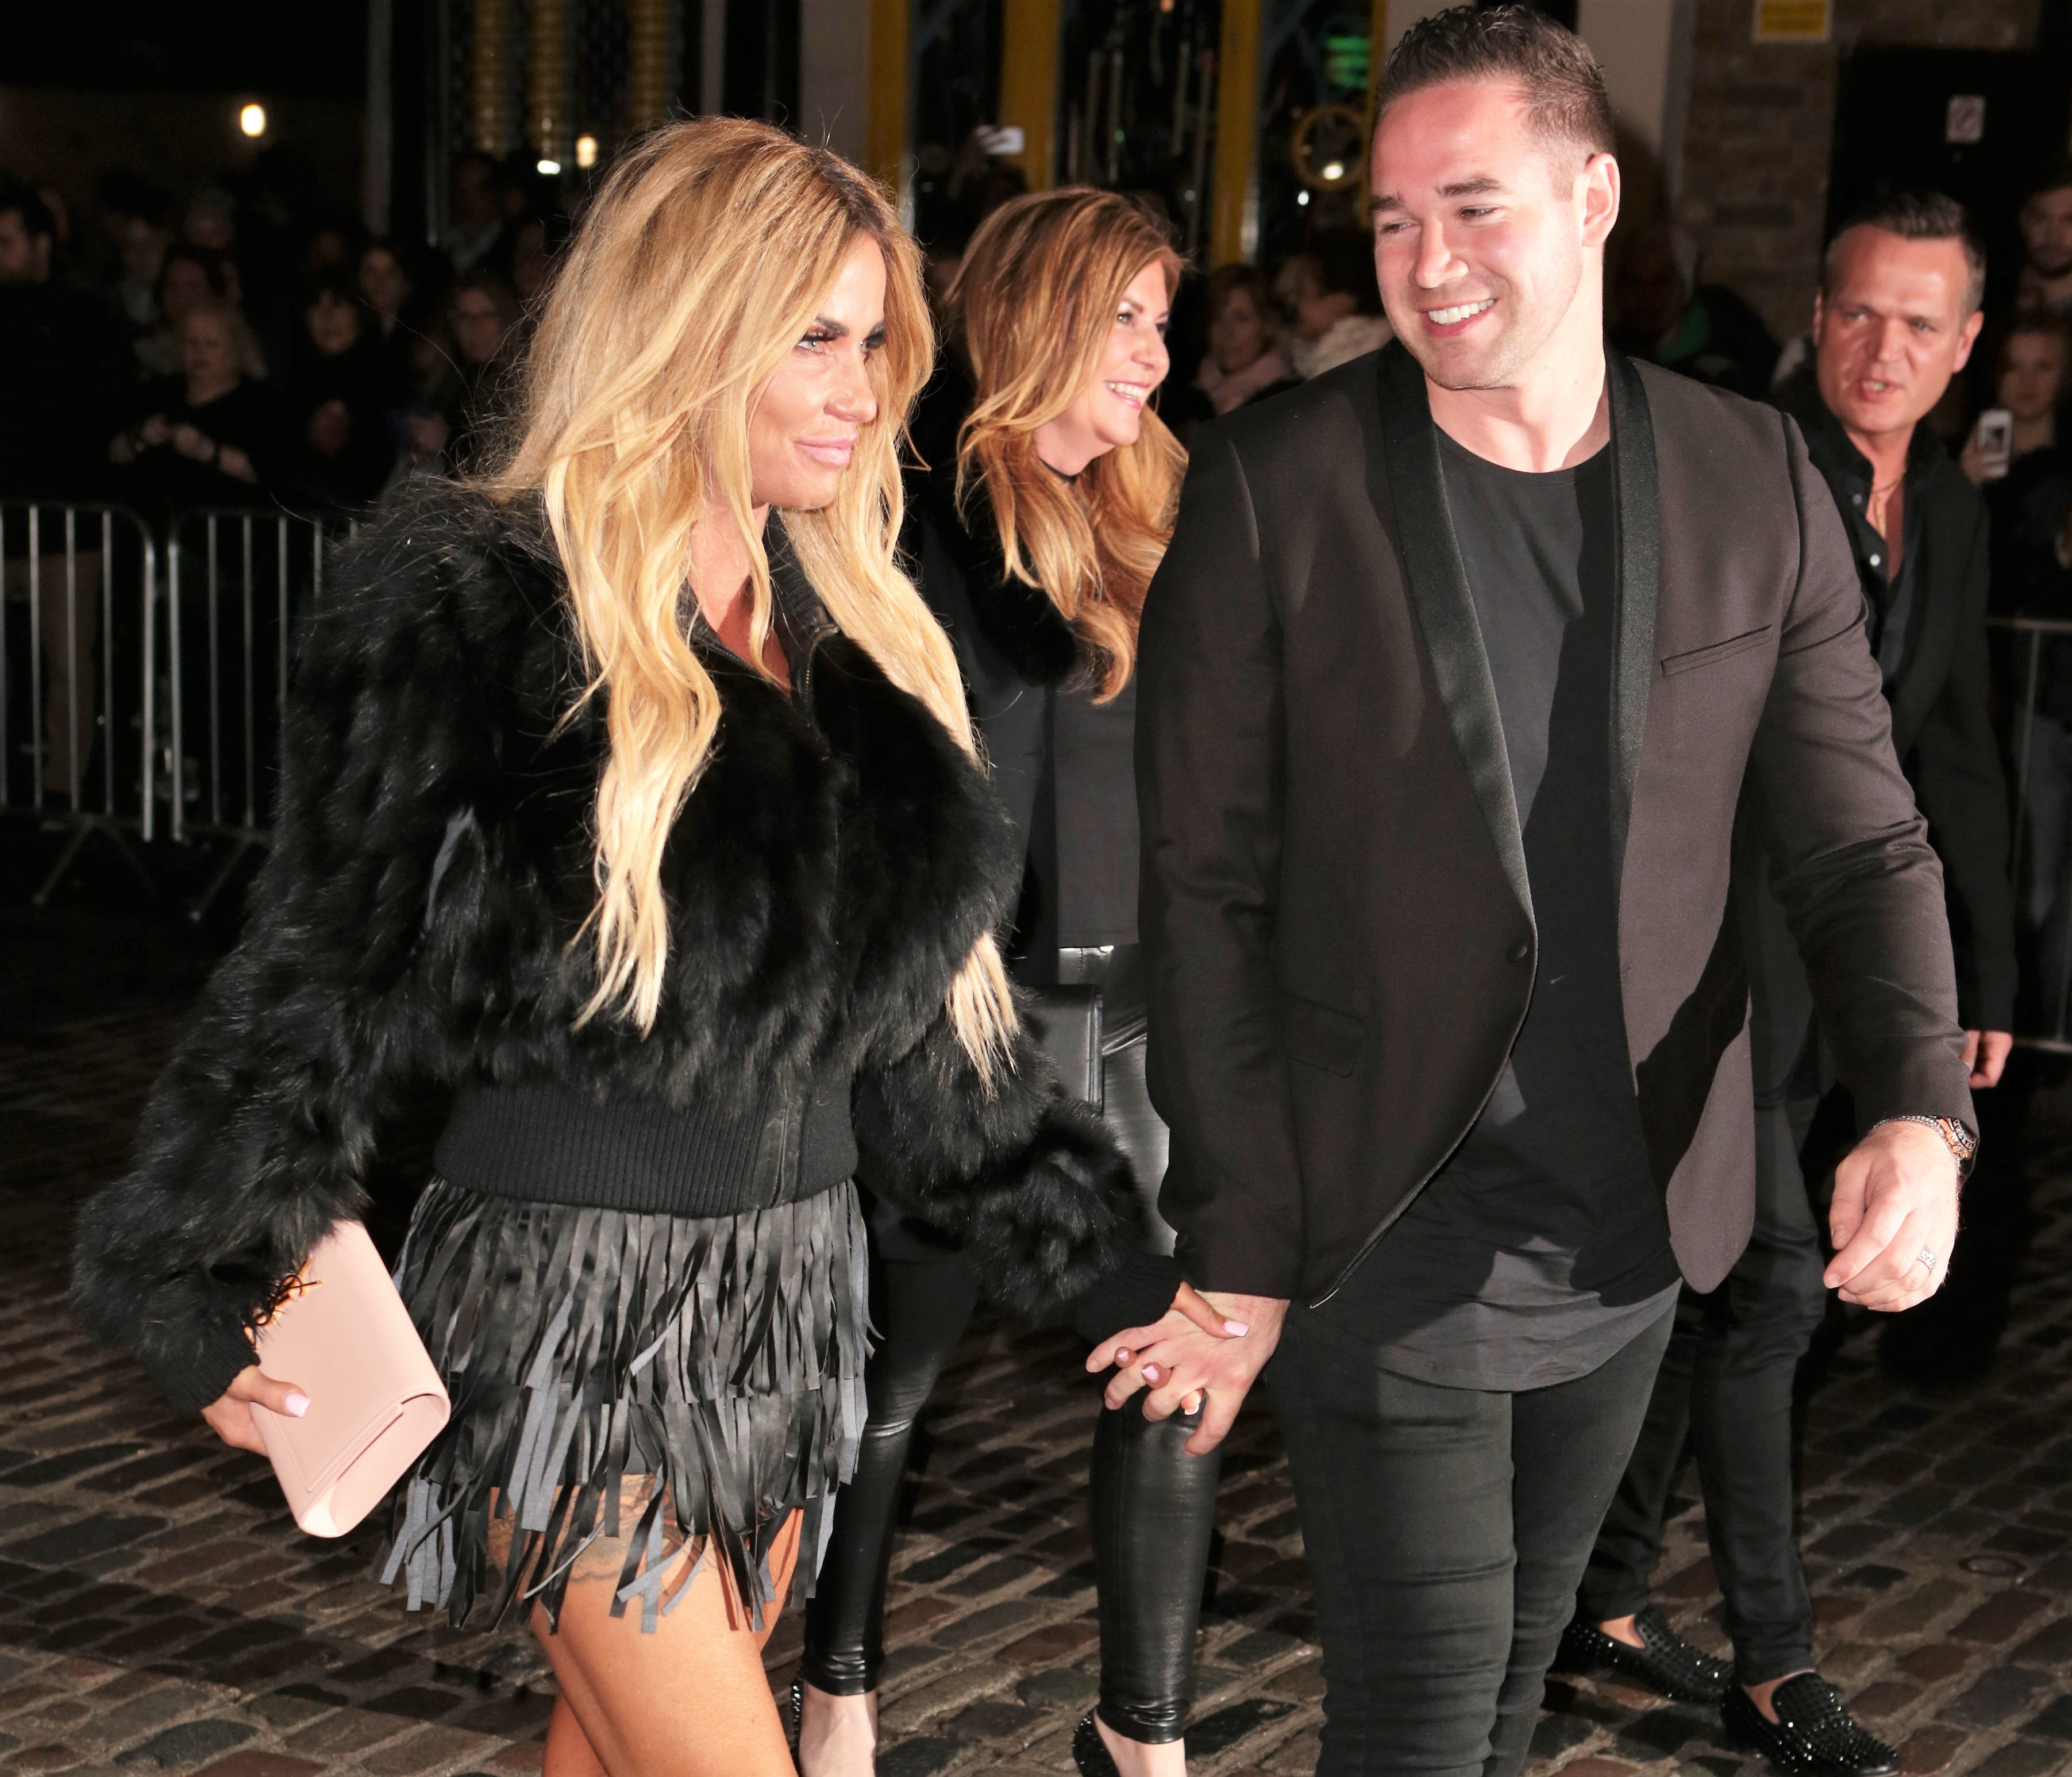 Katie Price spoils hubby Kieran Hayler with lavish birthday present